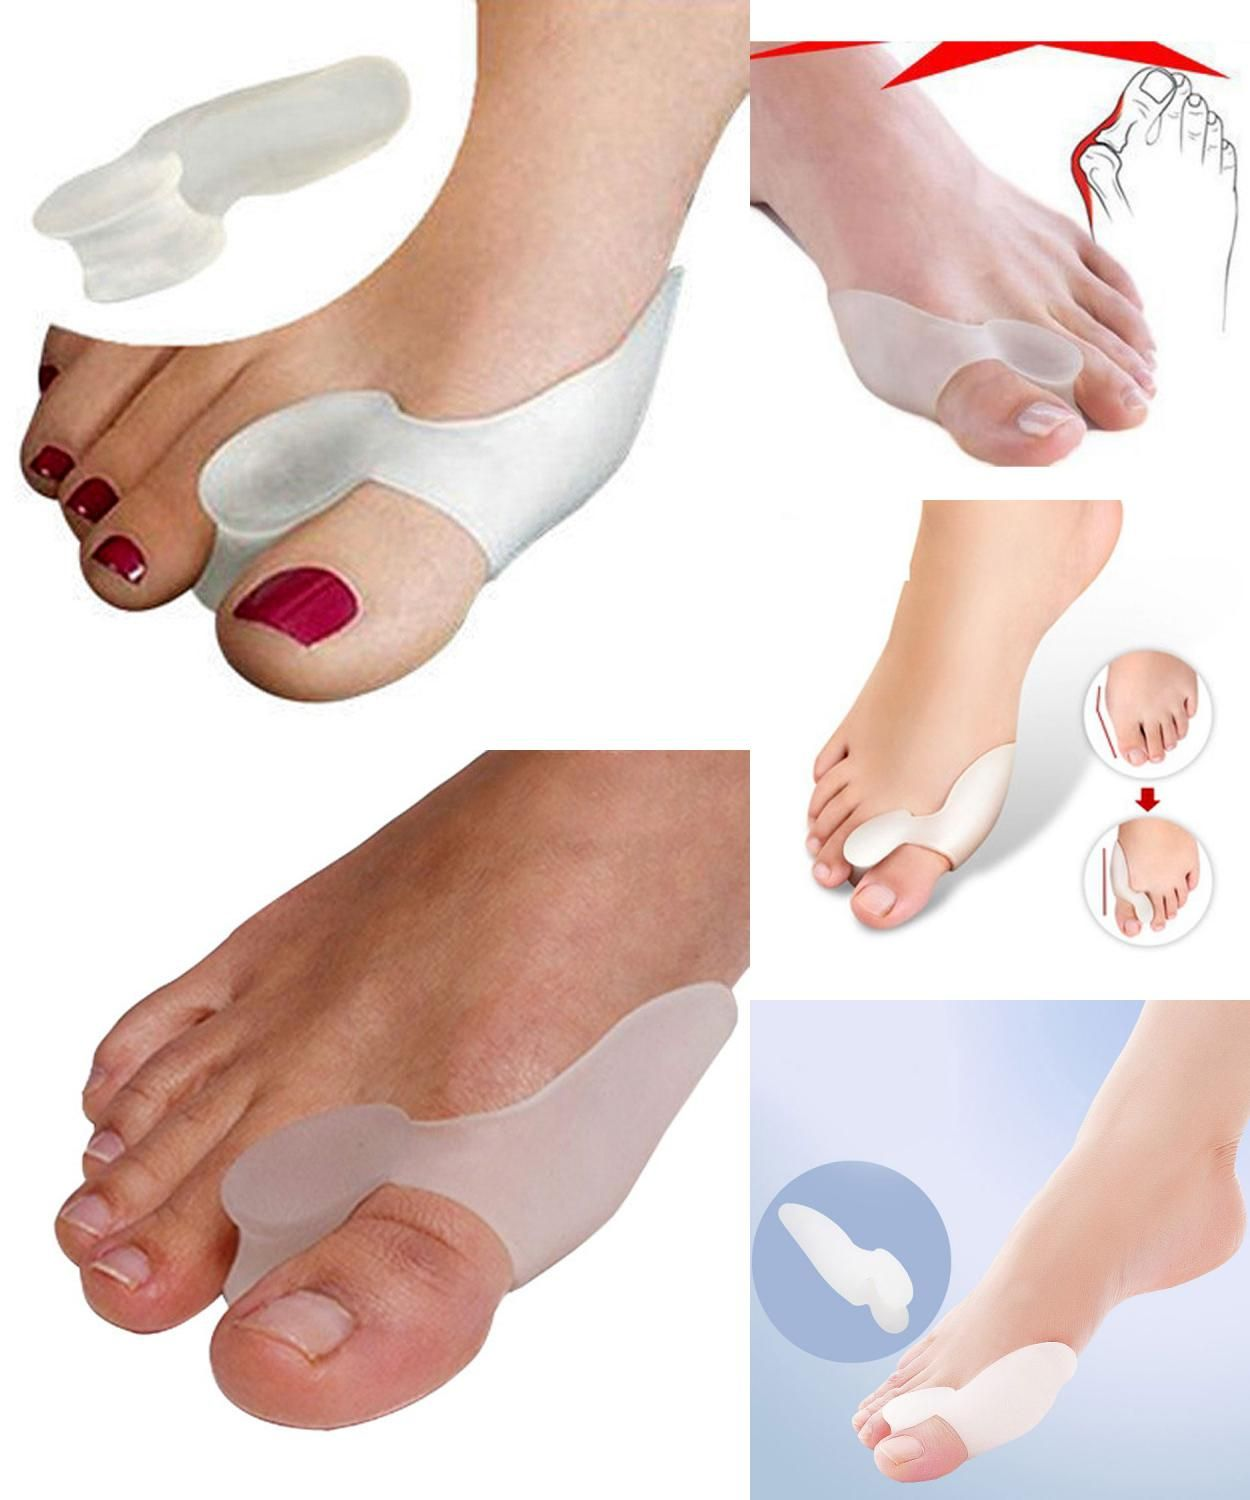 Visit To Buy 5pairs Feet Care Silicone Insoles Heel Toe Spreading Orthotic Insole Shoes Cushion Foot Care Gel Orthopedic Supp Feet Care Gel Toes Shoe Insoles